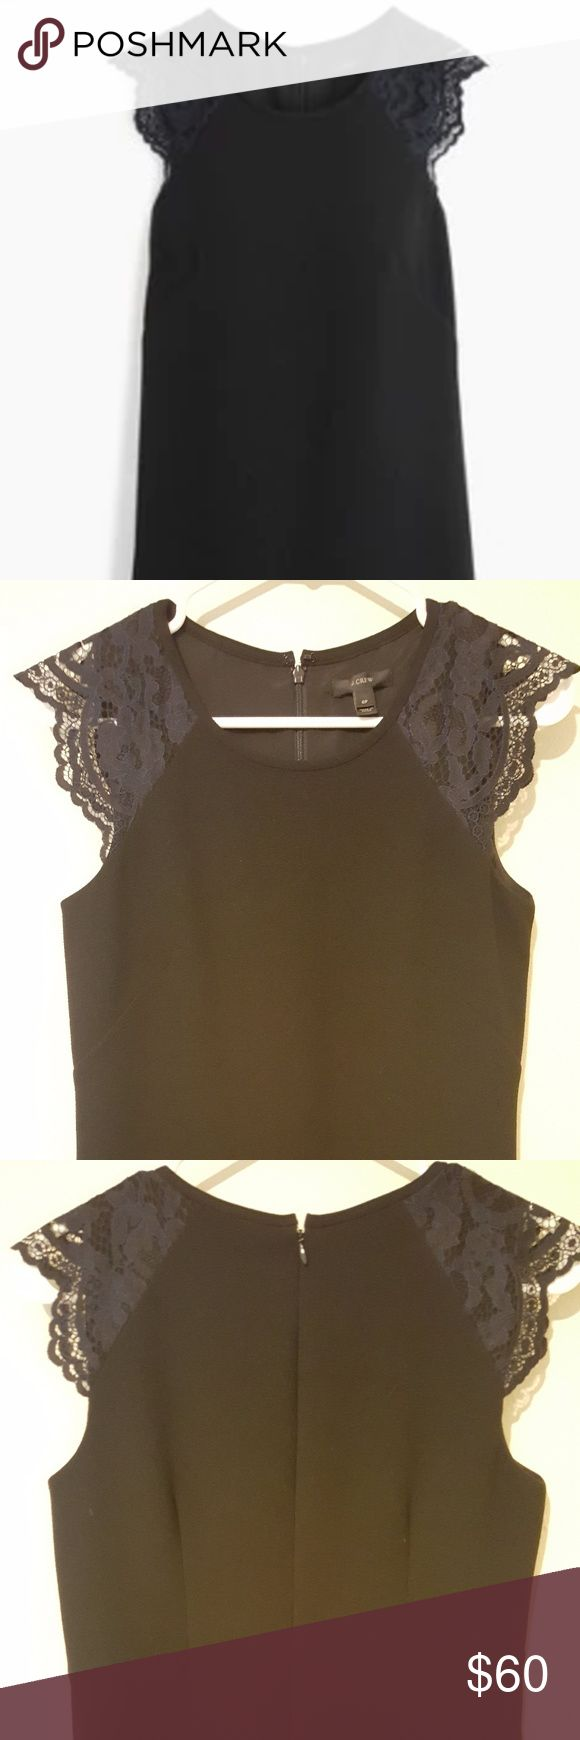 J.Crew Petite 6 Edged Lace Cap-Sleeve Dress Black J.Crew petite 6 edged lace cap-sleeve black dress - Poly/elastane - Back zip - Lined - Machine wash - Slick side pockets - Like new J. Crew Dresses